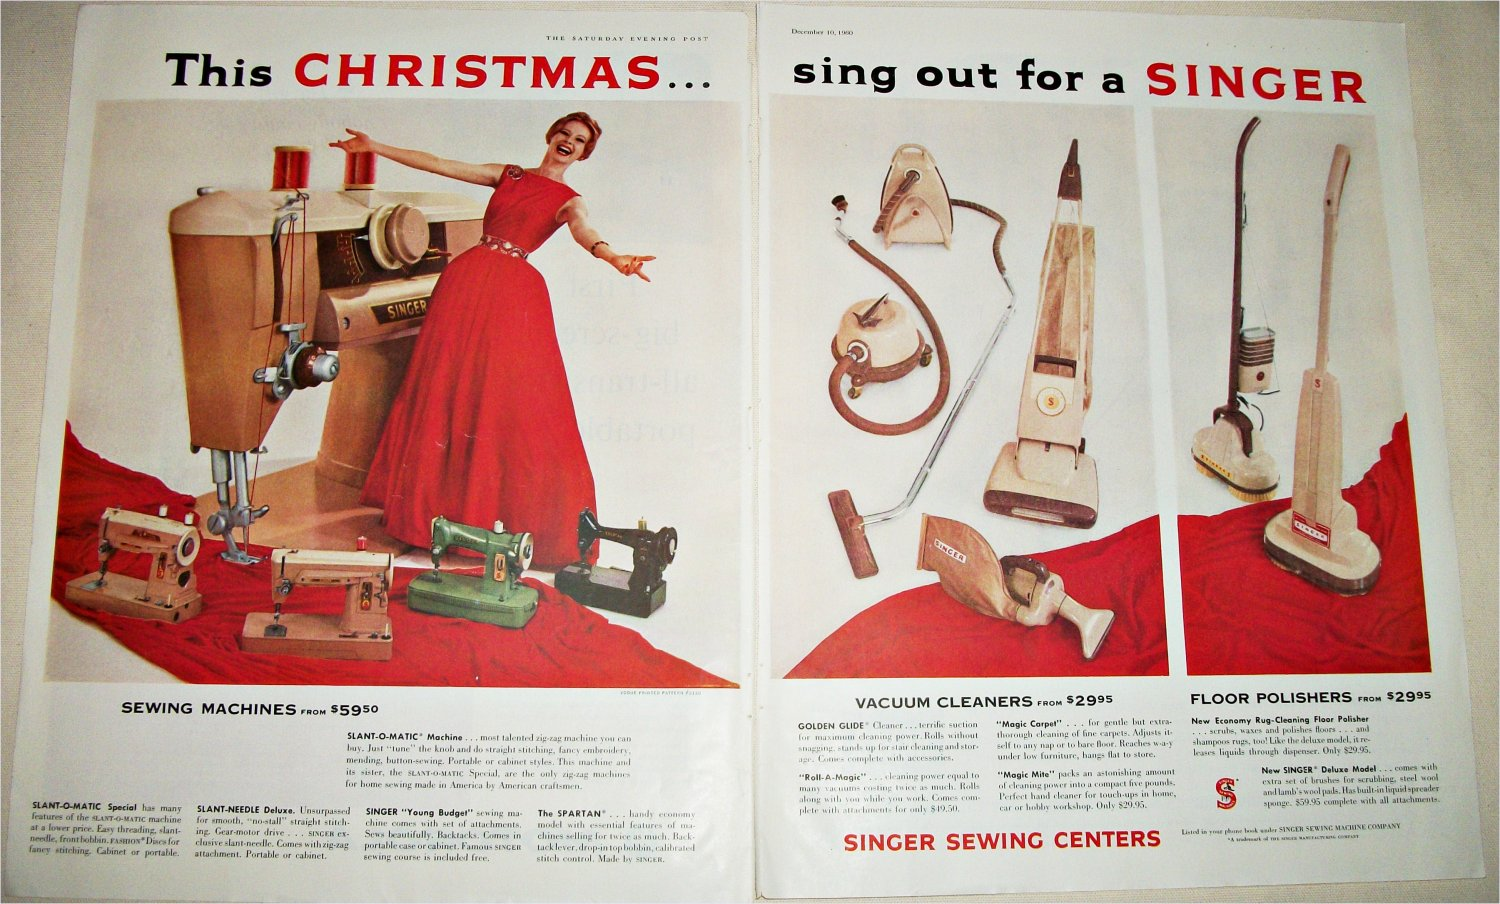 1960 Singer Appliances Christmas ad